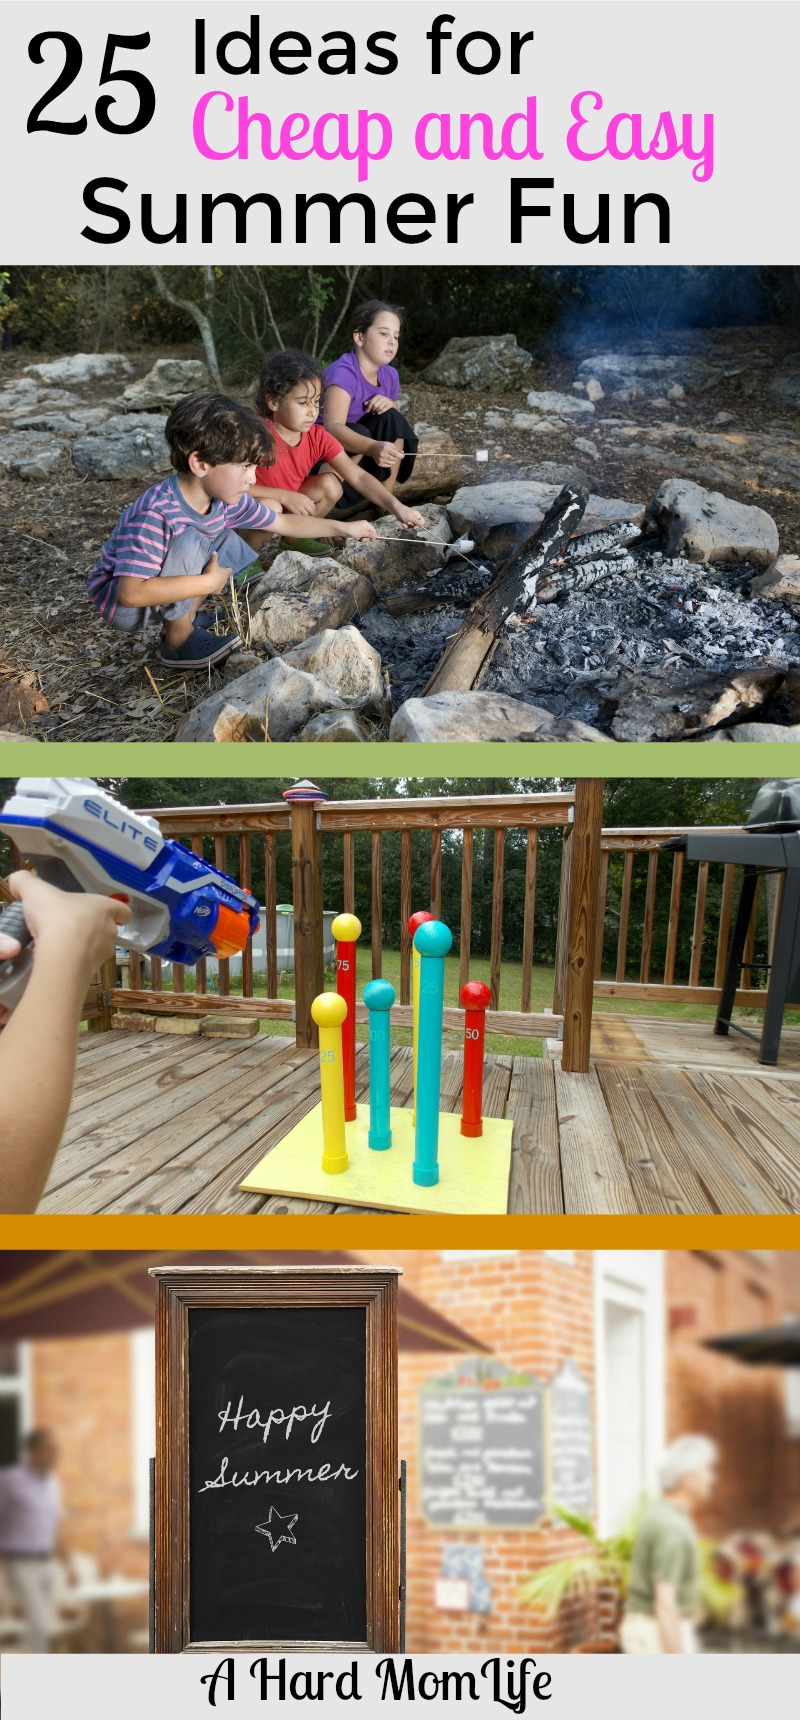 Looking to keep the kids busy without spending a lot? Budgeting during the summer can be hard. Try these 25 ideas for cheap and easy summer fun at home.